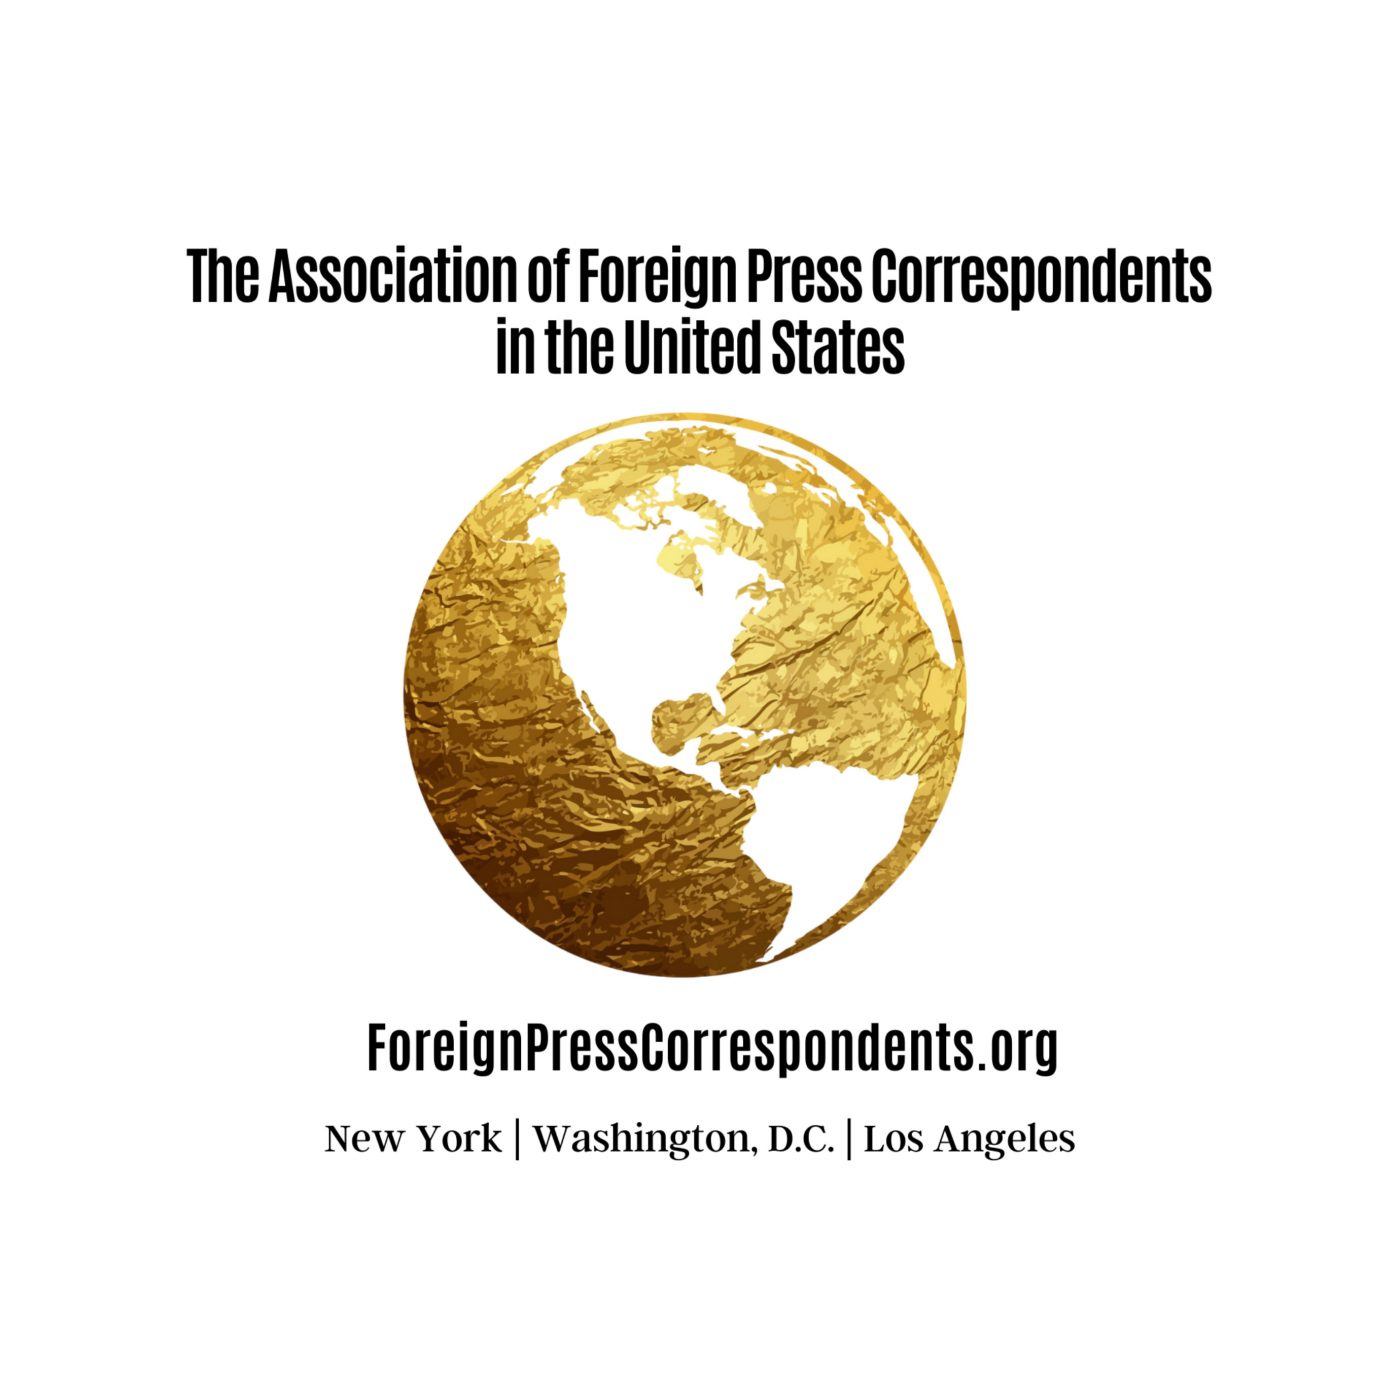 afpc square 1400x1400 - The Association of Foreign Press Correspondents in the United States